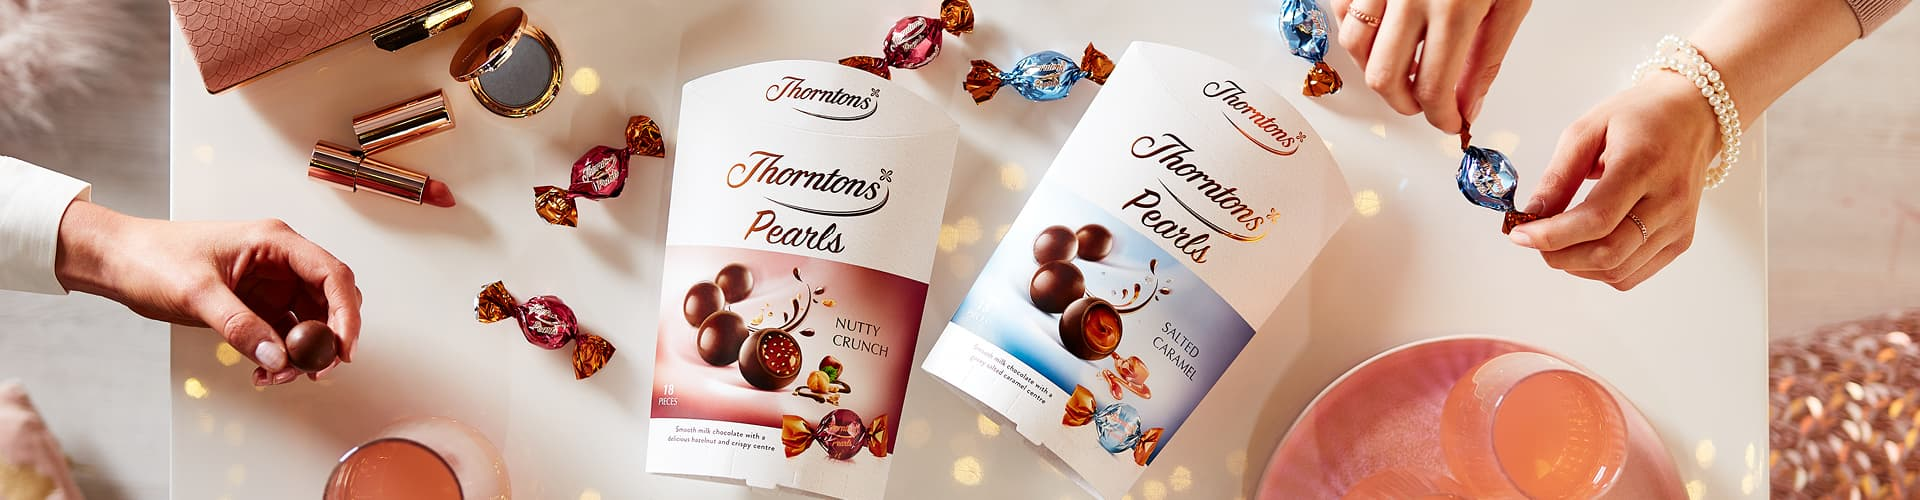 image for Thorntons Pearls